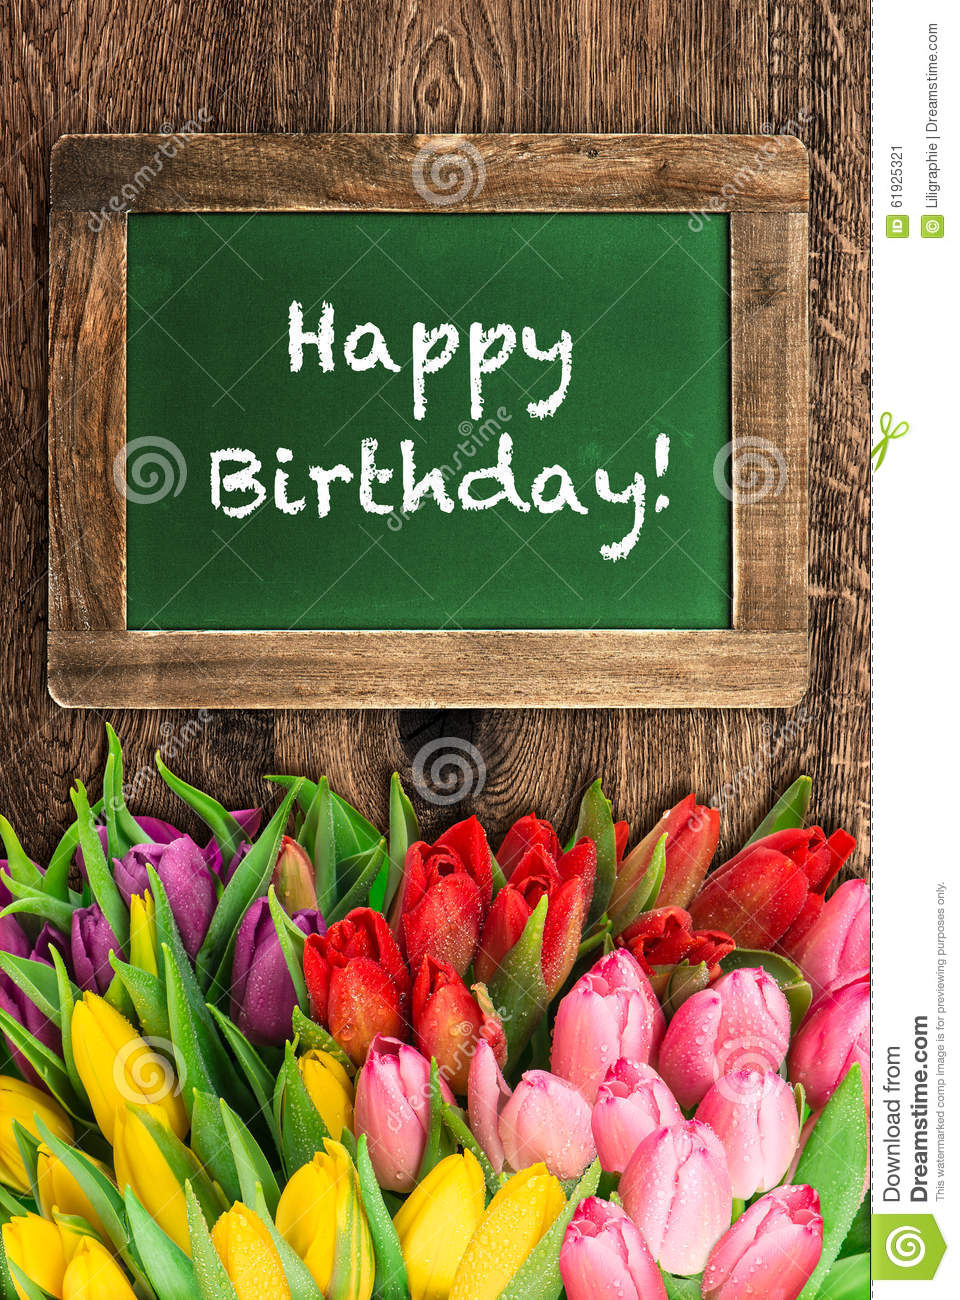 Tulip Flowers And Vintage Chalkboard Happy Birthday Stock Image